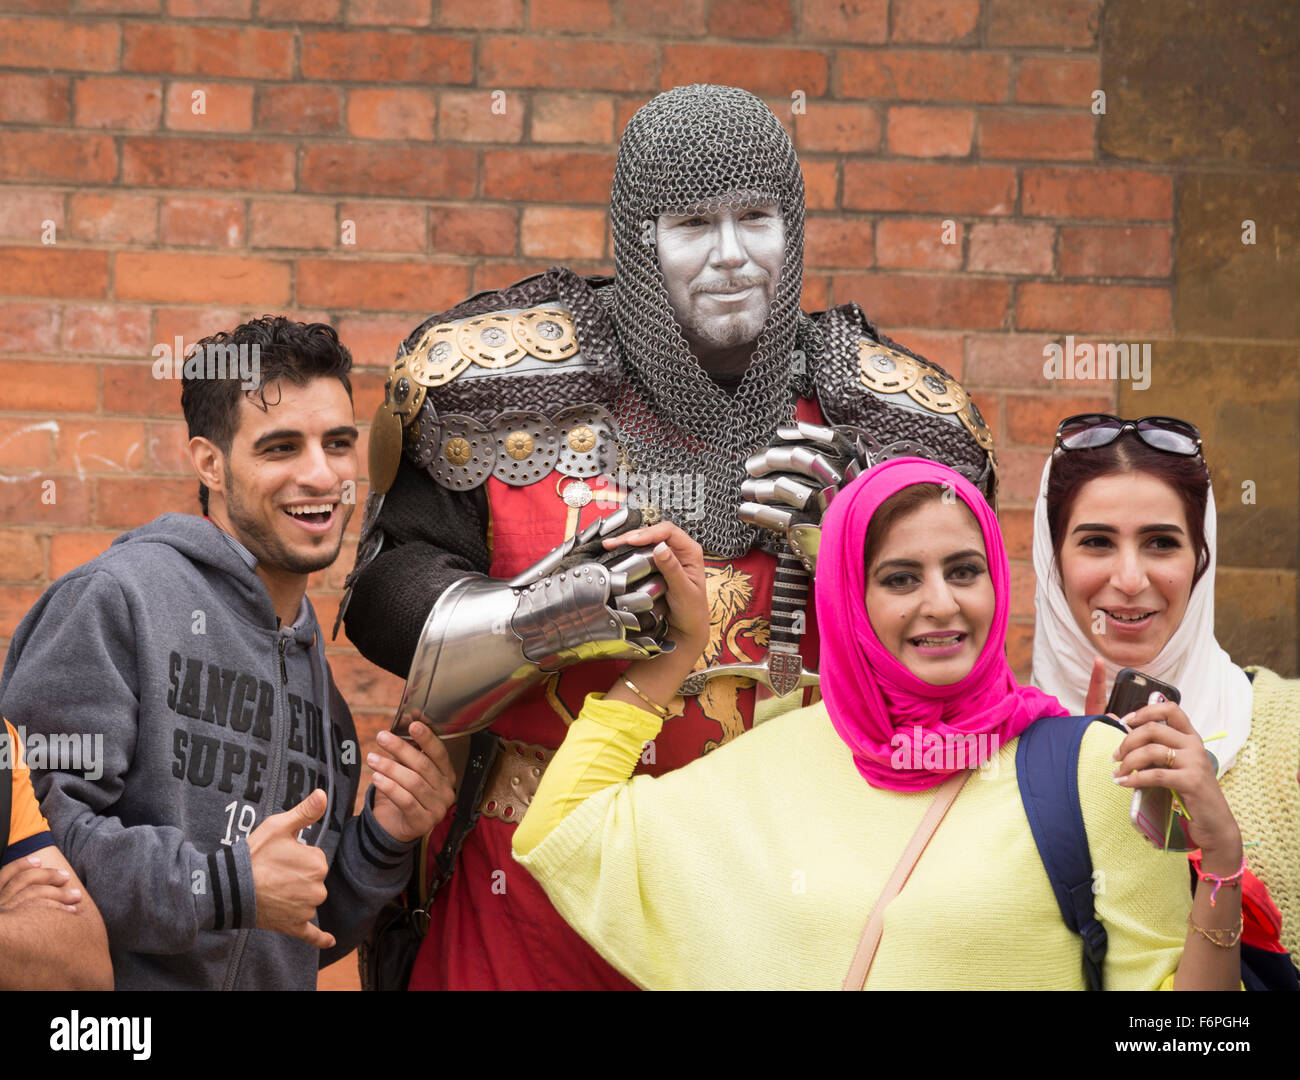 An ethnic family pose with a knight in stratford upon avon the birthplace of shakespeare - Stock Image